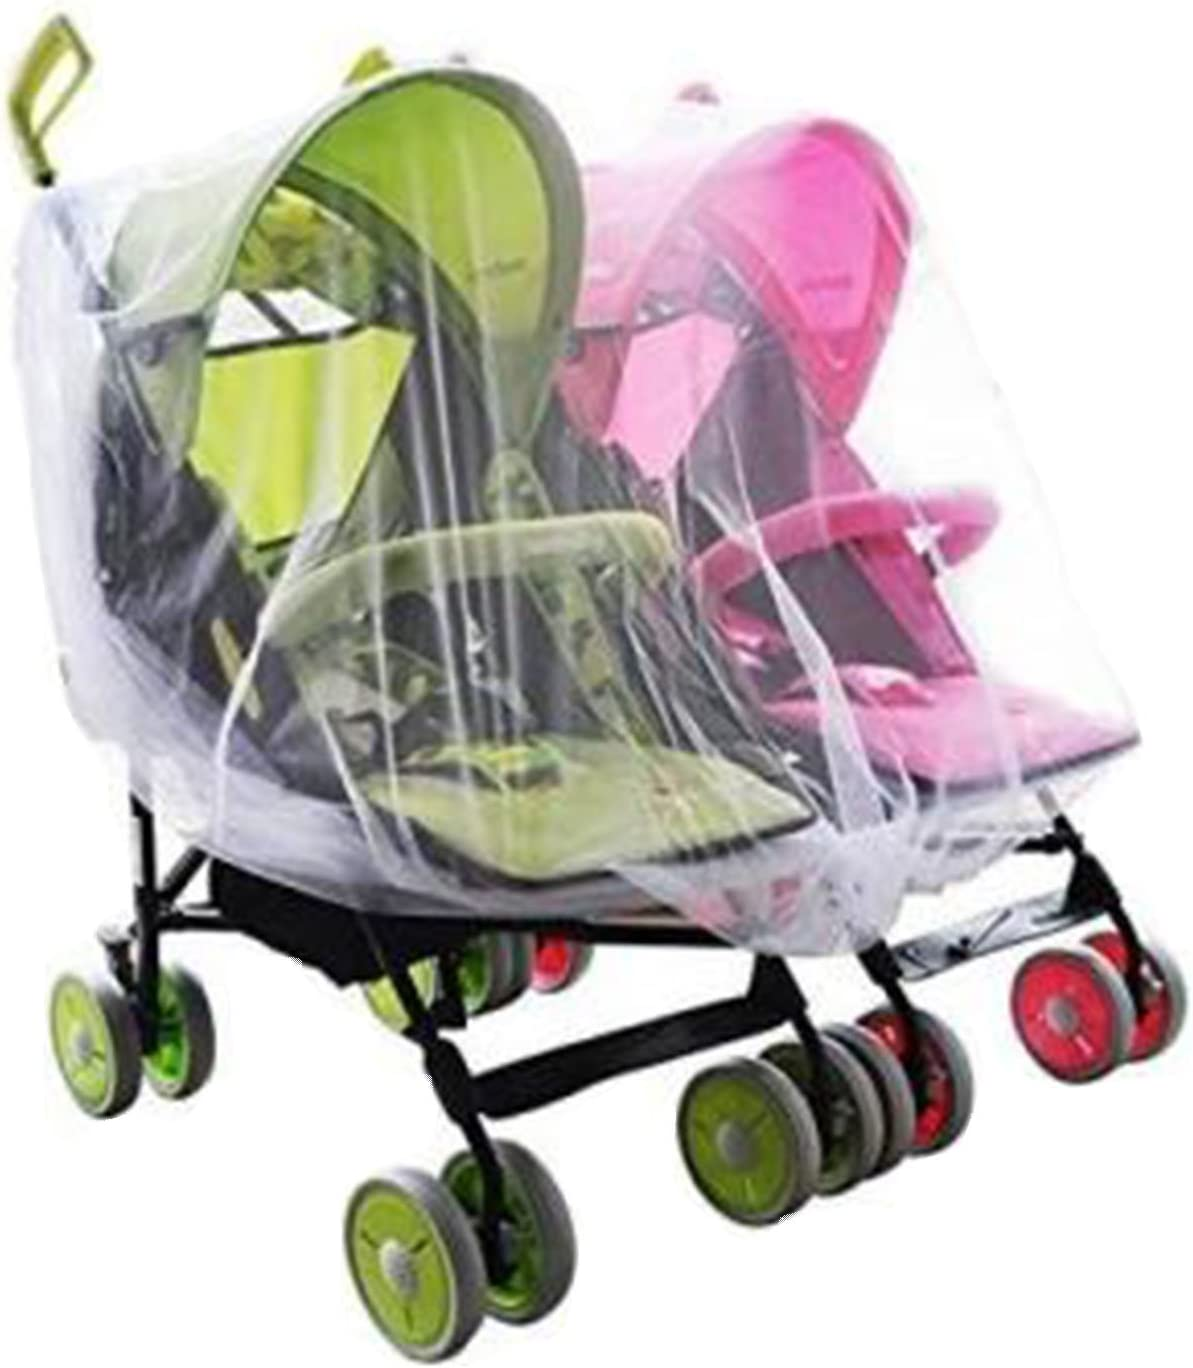 Portable Universal Twin Baby Stroller Mesh Mosquito Net Cover Preventing Bee Insect Bug for Tandem Side by Side Strollers Pushchairs